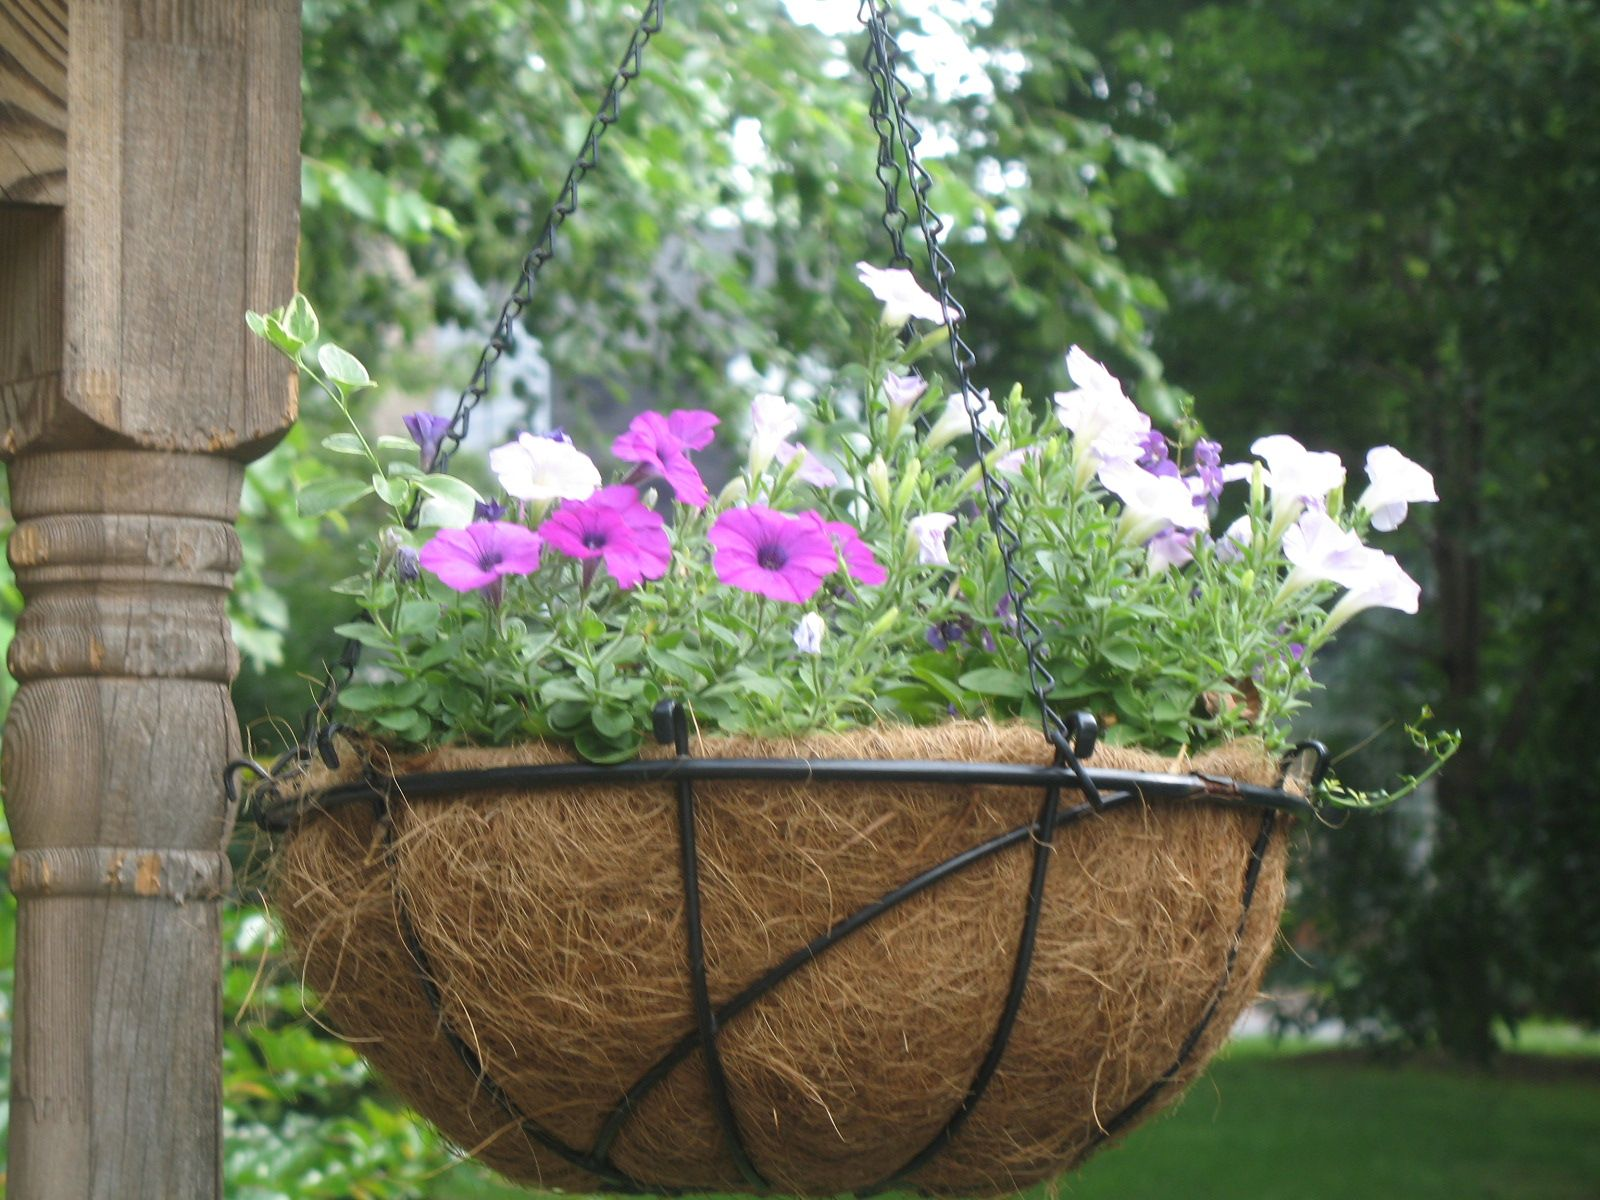 Growing Hanging Flower Baskets : How to plant in coconut fiber hanging baskets garden